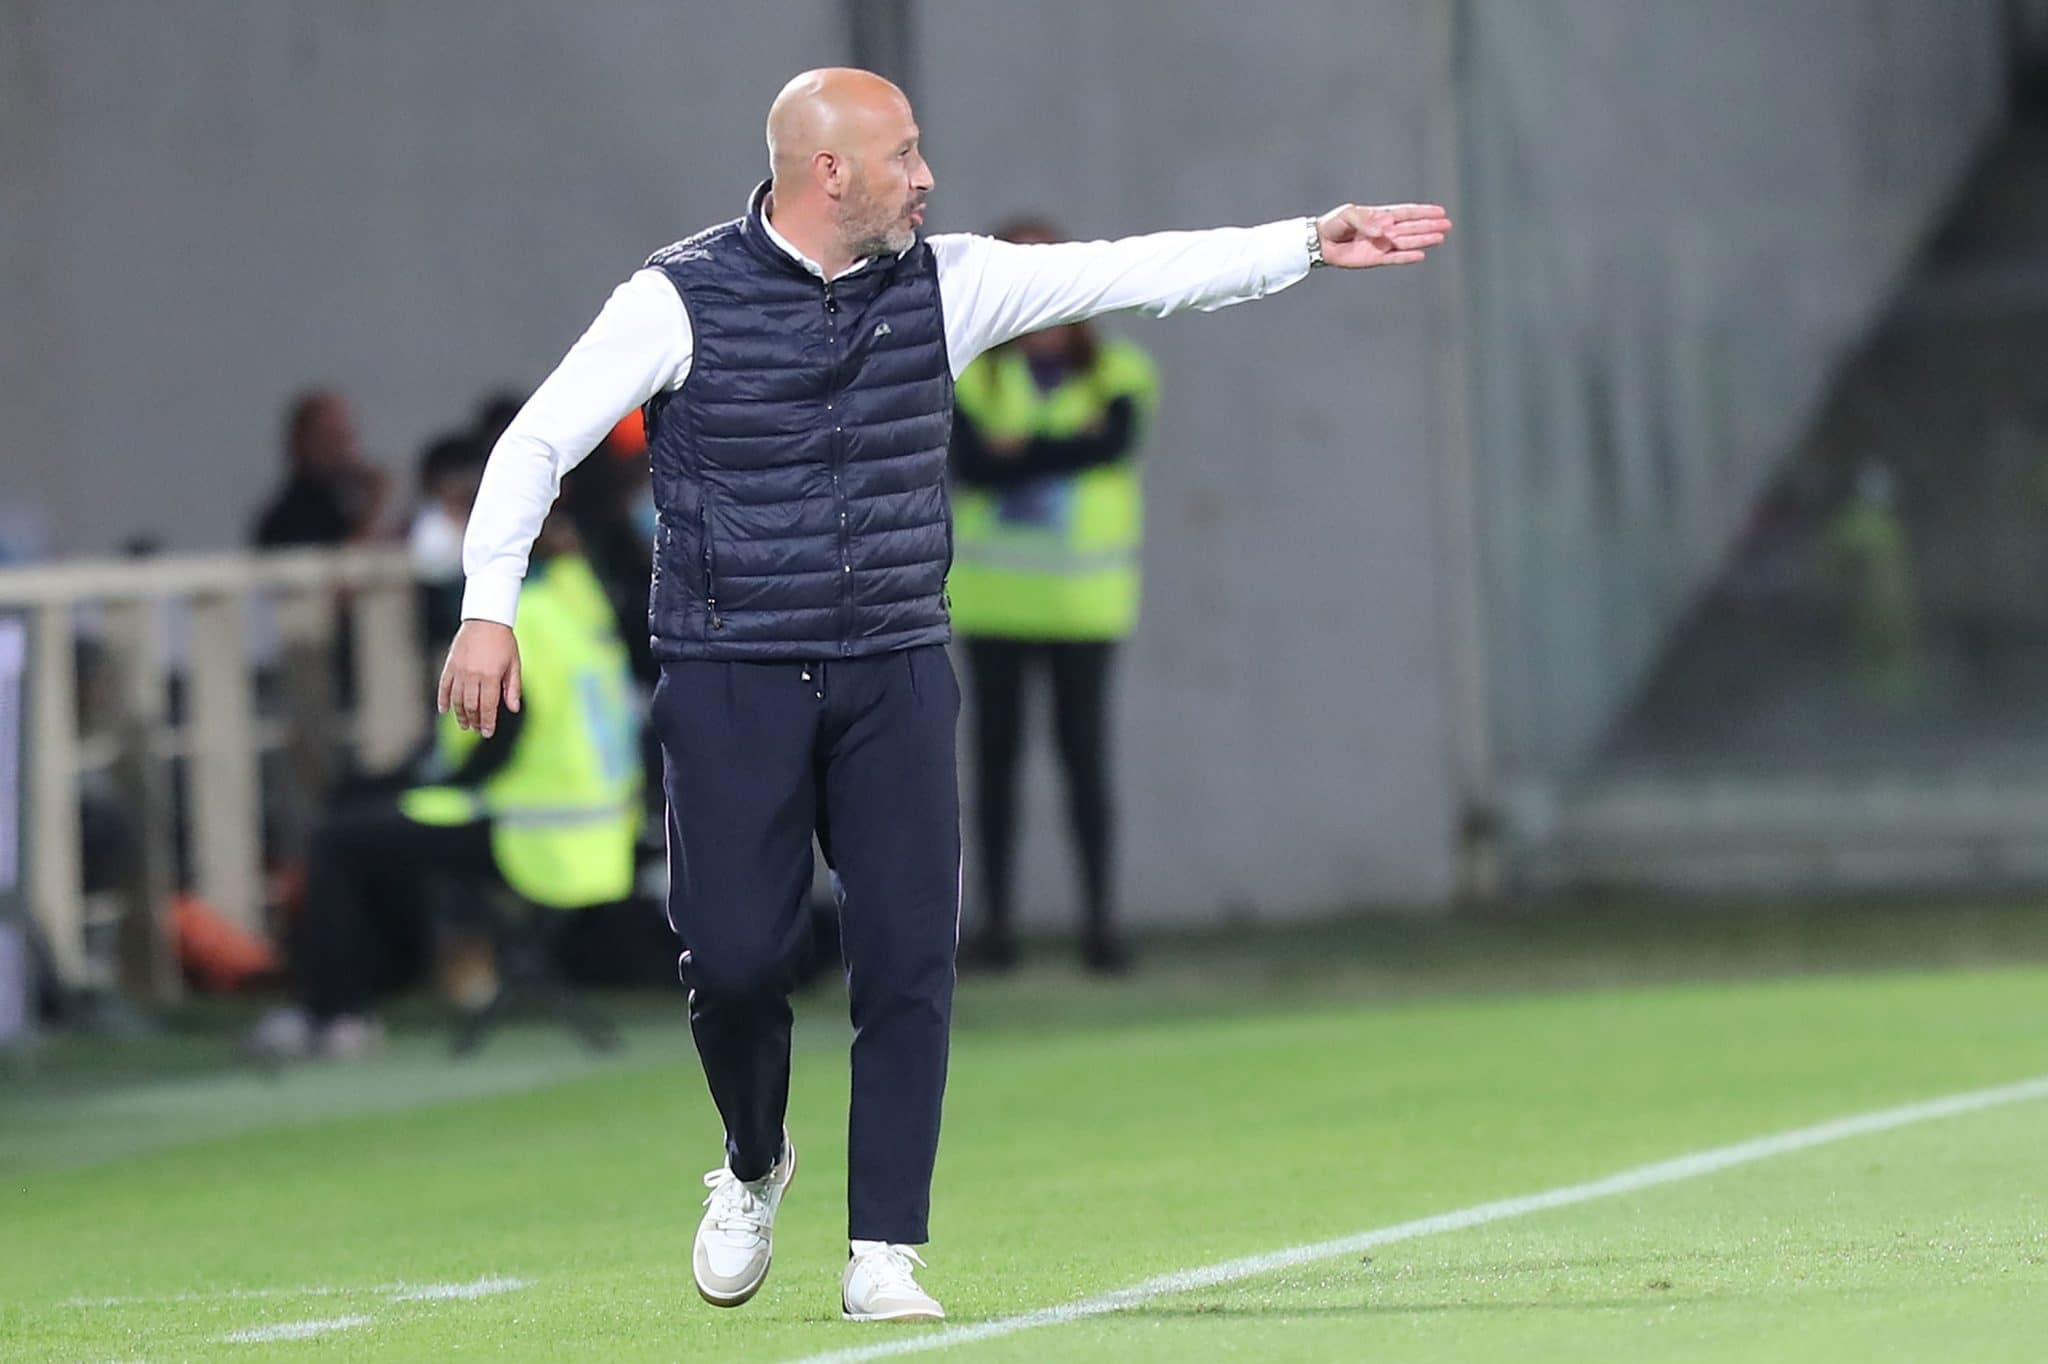 FLORENCE, ITALY - SEPTEMBER 21: Vincenzo Italiano manager of AFC Fiorentina gestures during the Serie A match between ACF Fiorentina v FC Internazionale on September 21 in Florence, Italy.  (Photo by Gabriele Maltinti/Getty Images)